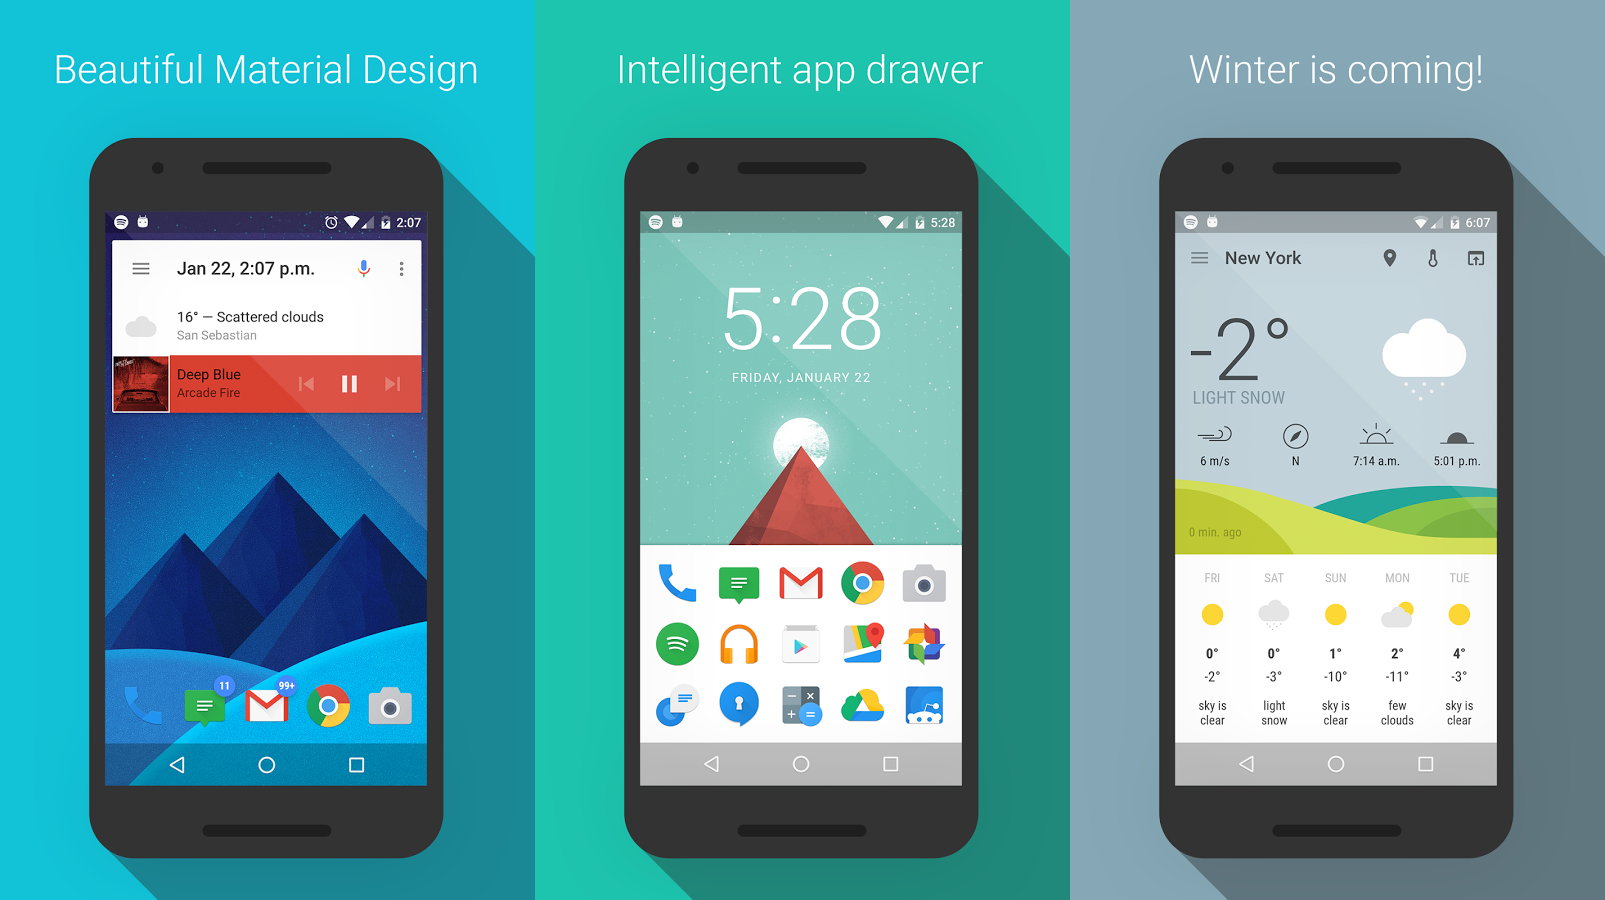 Download This: ASAP Launcher is a fast and material designed home screen